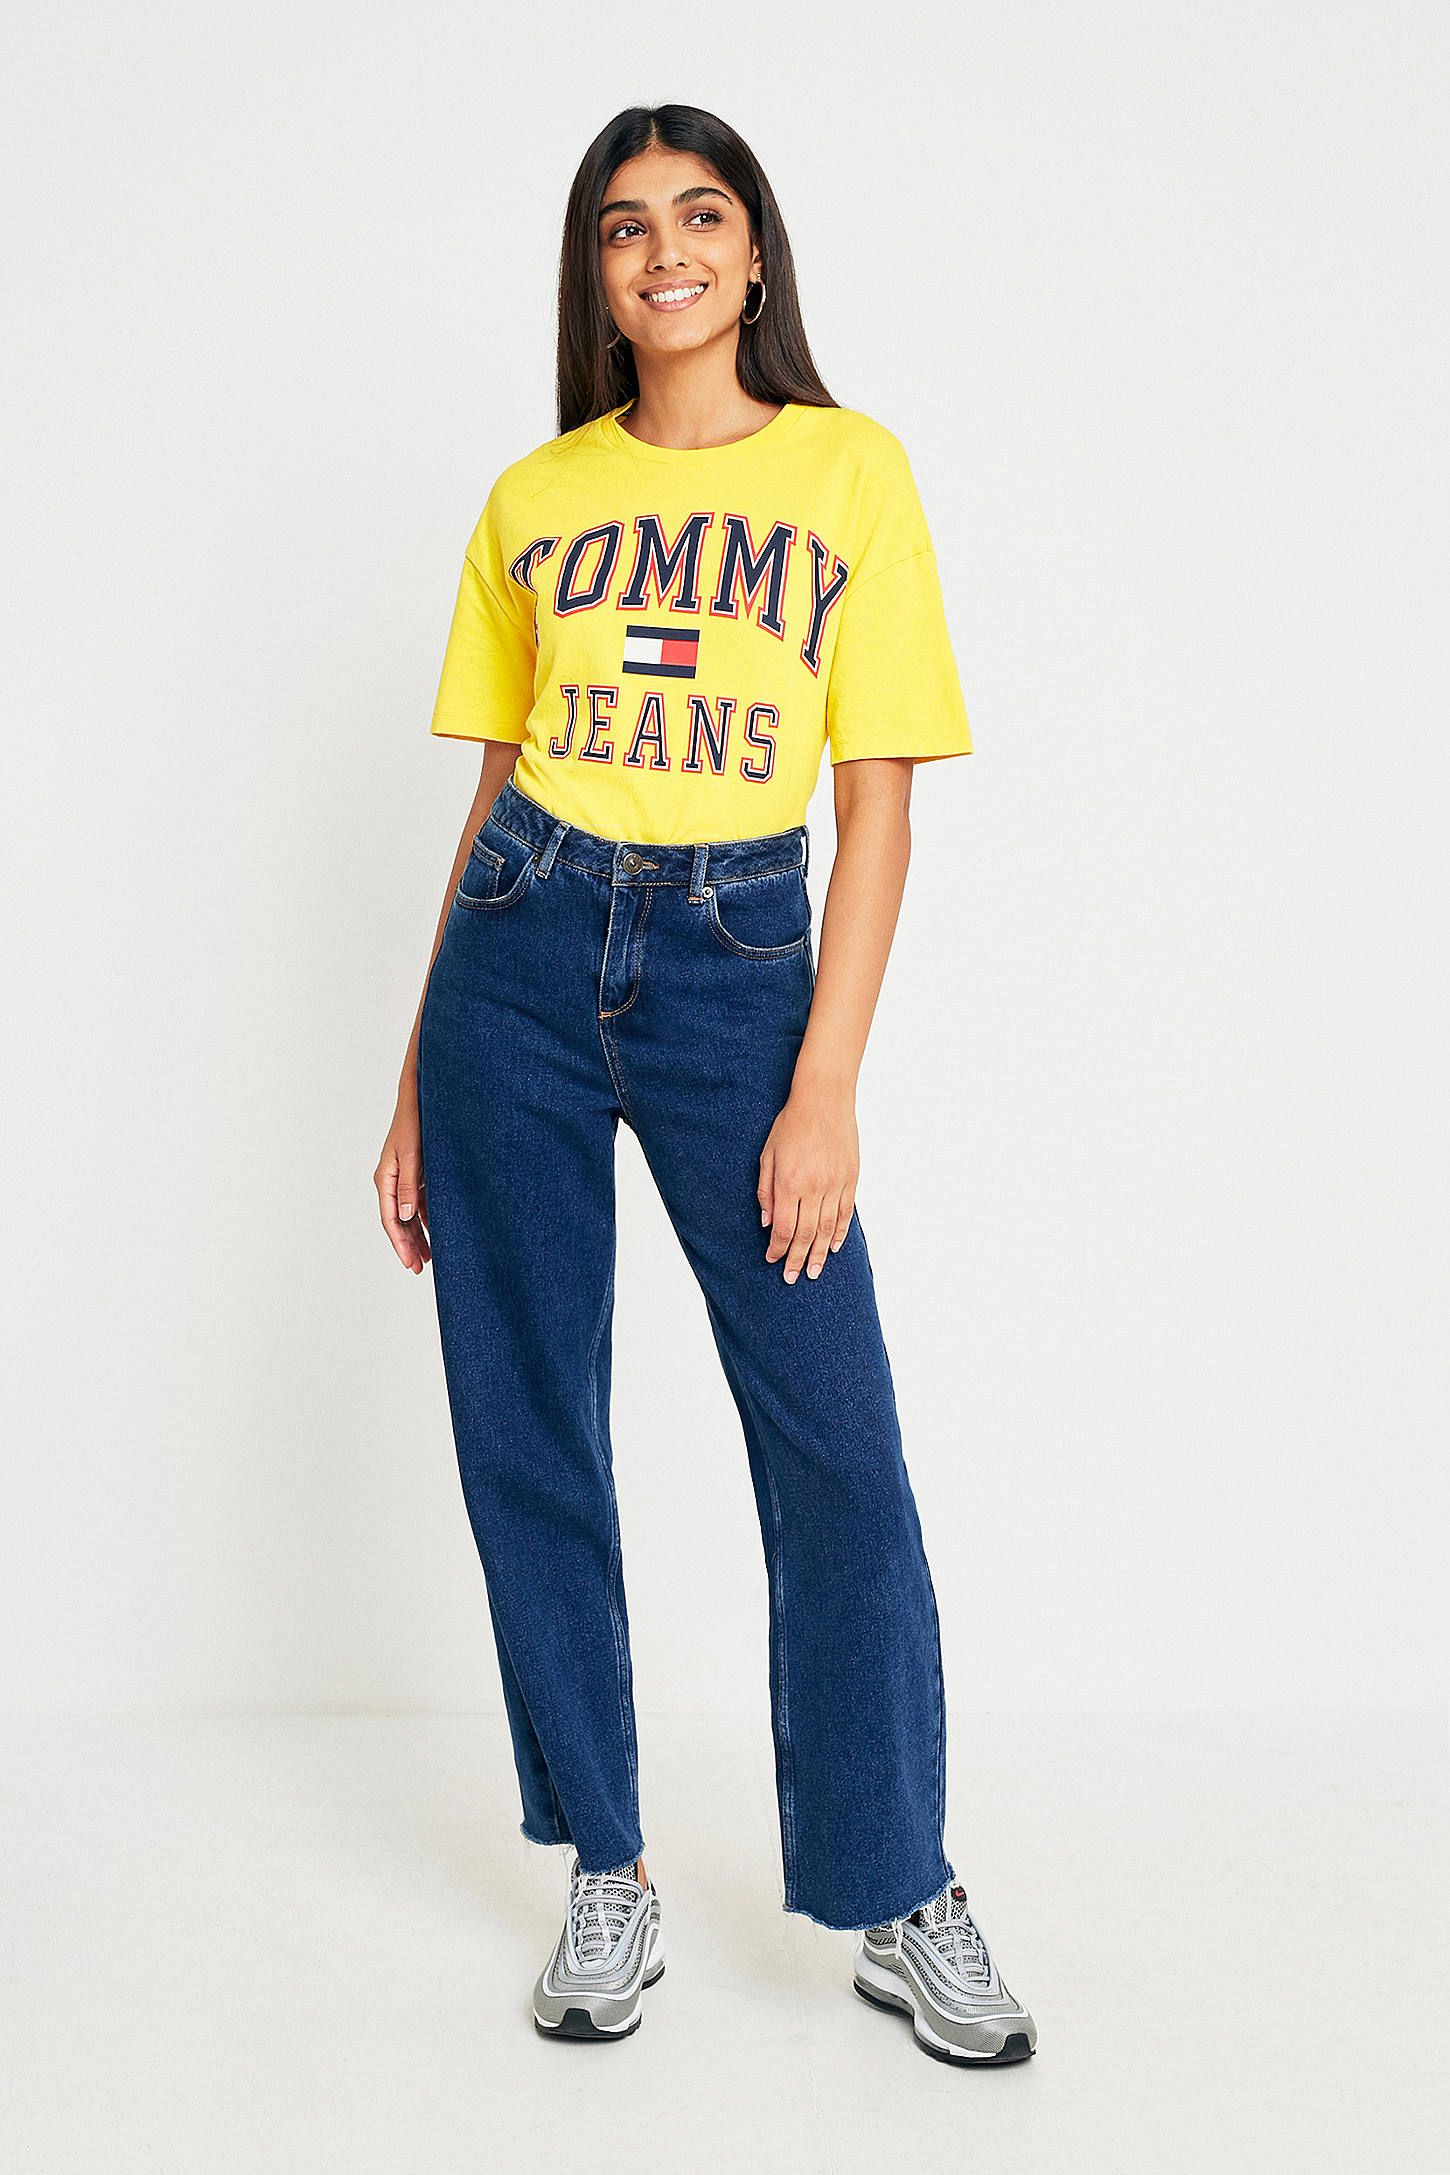 565e03aa706 Tommy Jeans  90s Yellow Logo T-Shirt